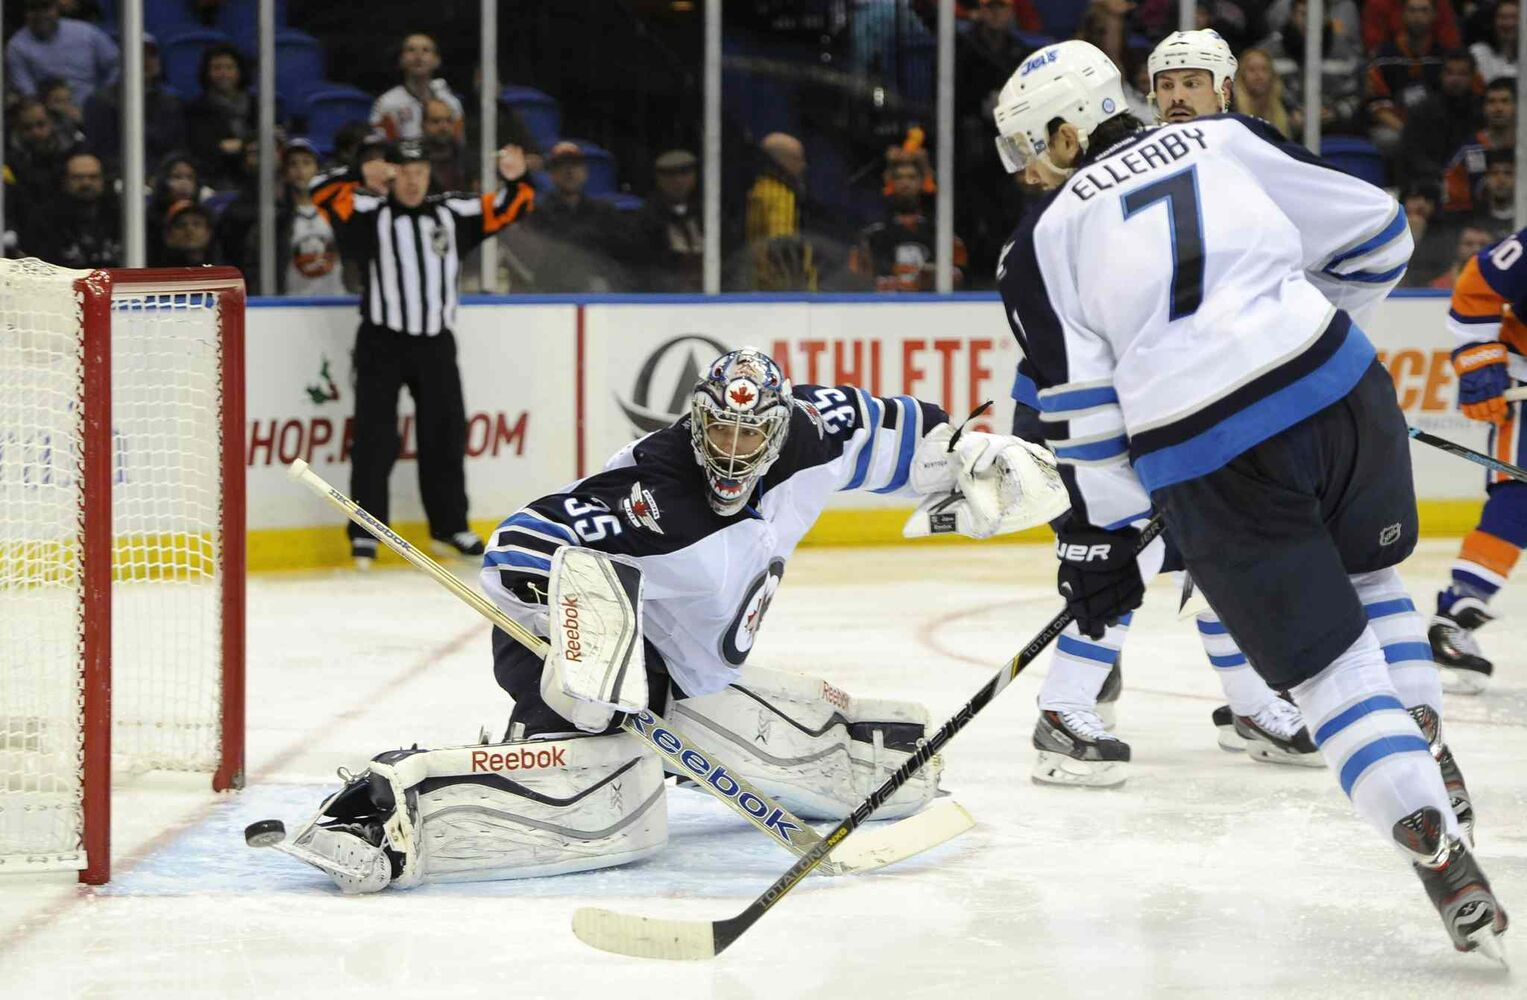 Winnipeg Jets goalie Al Montoya (left) kicks the puck away from the goal as defenceman Keaton Ellerby watches during  the second period.